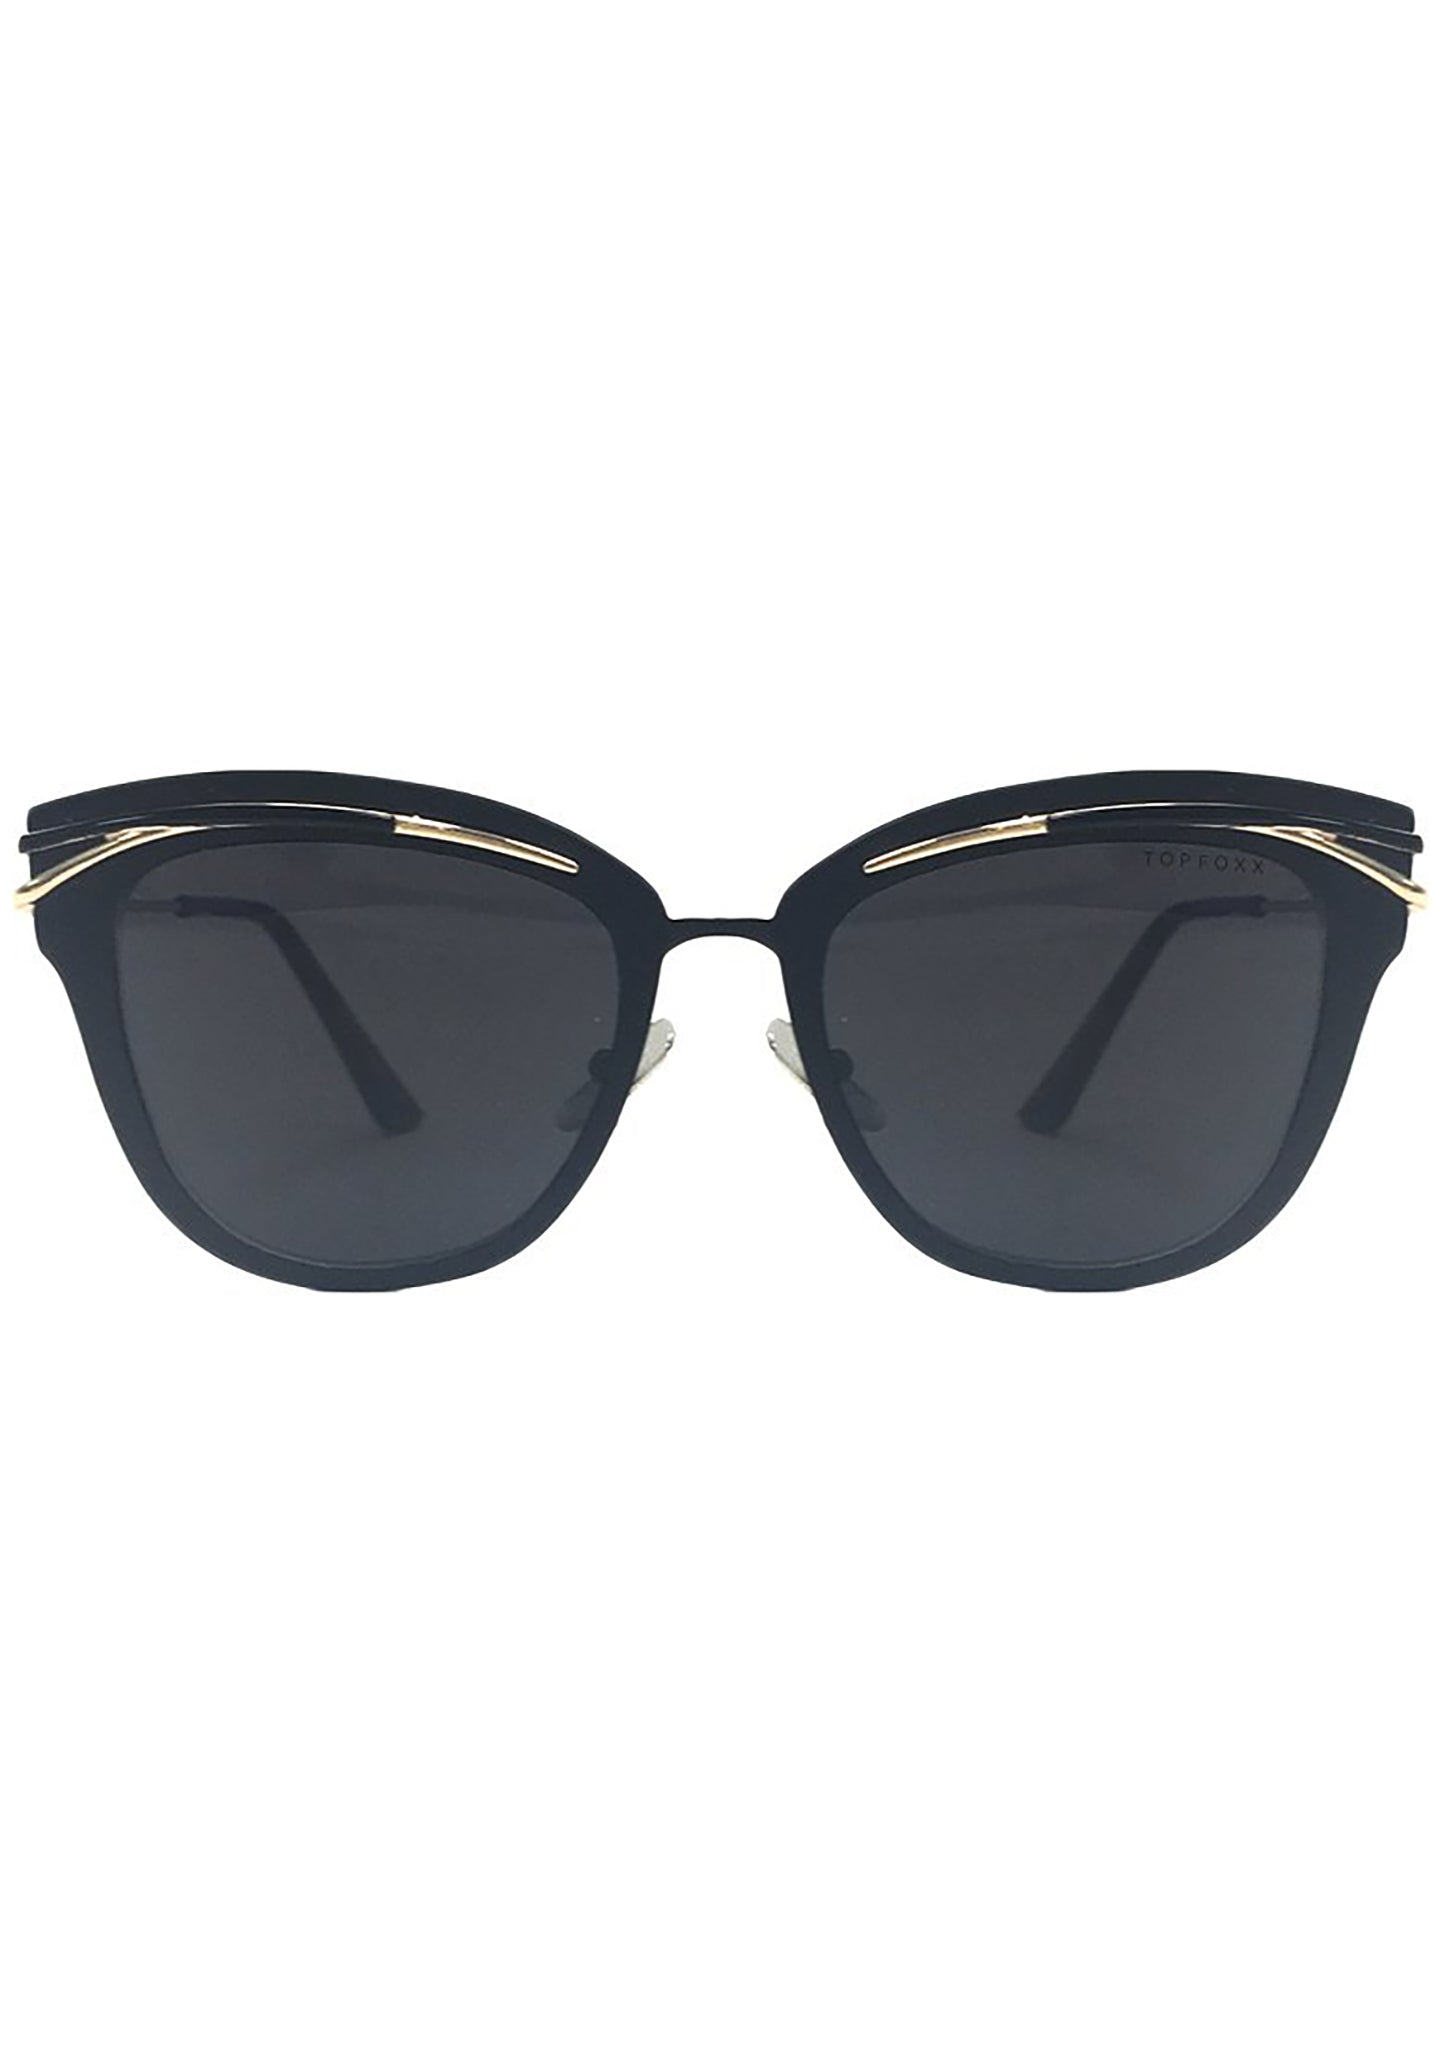 Candy Sunglasses in Black Gold